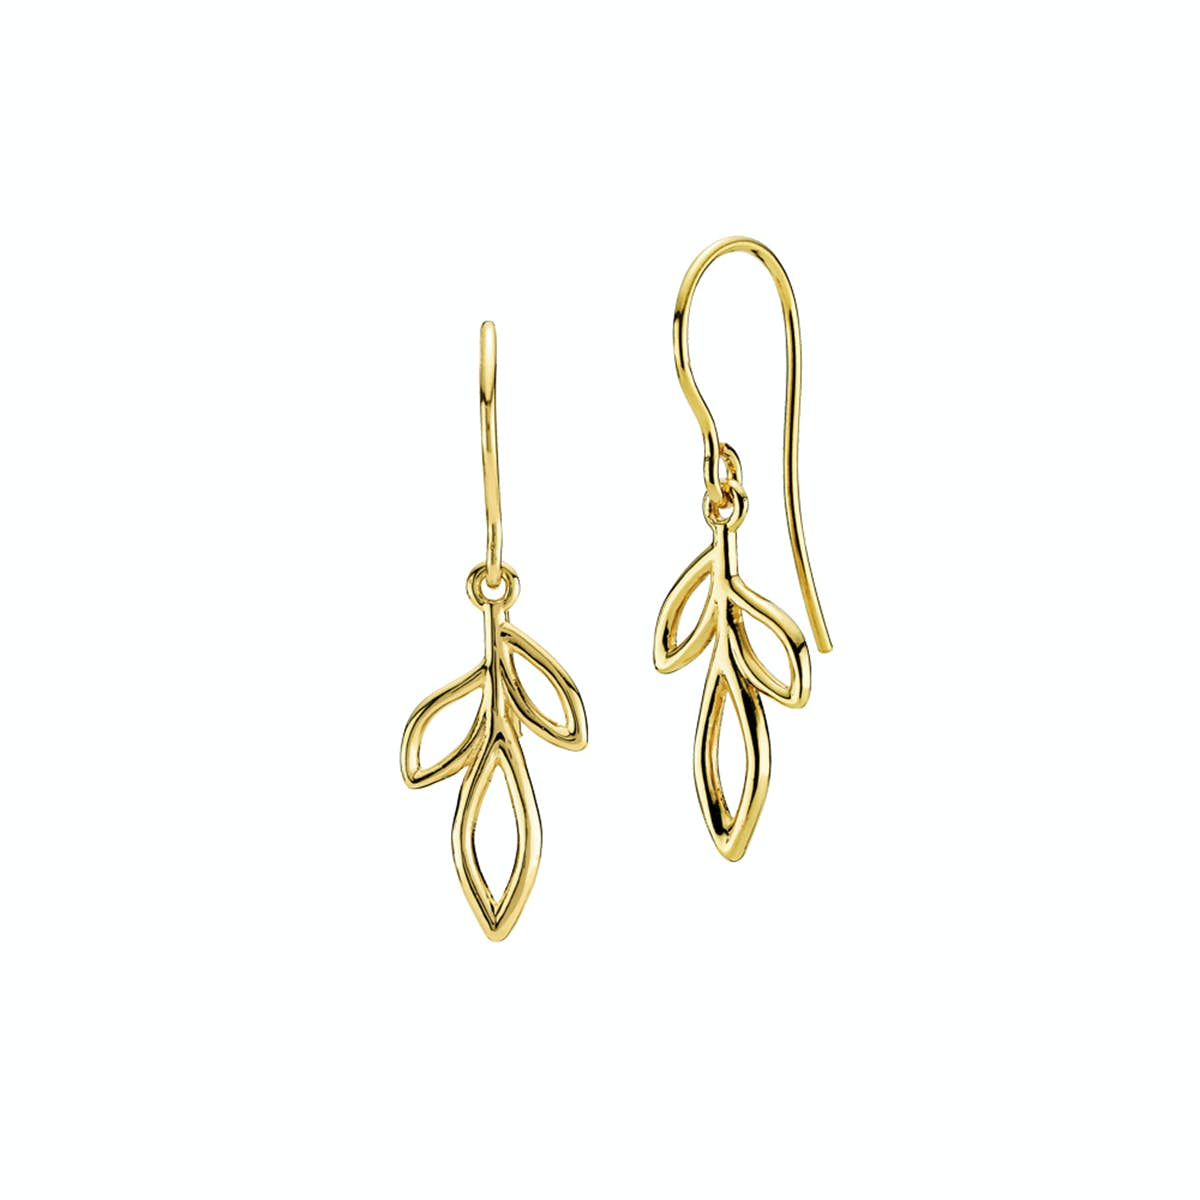 Dreamy Earrings Medium from Izabel Camille in Goldplated-Silver Sterling 925